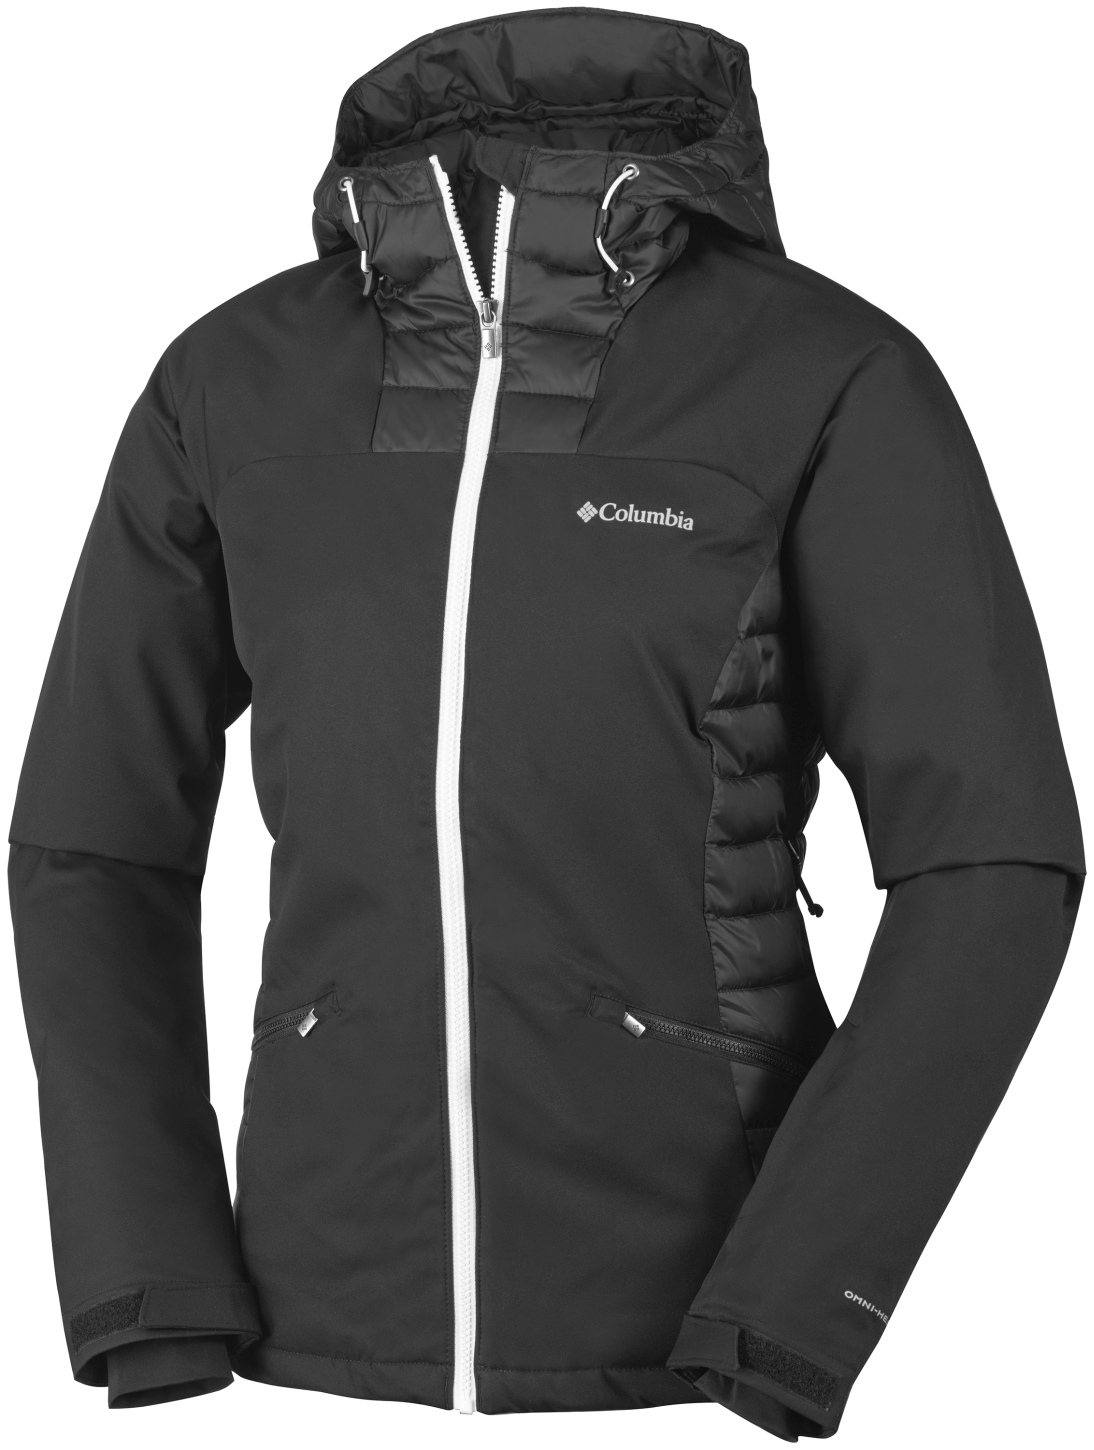 Columbia Women's Salcantay Hooded Ski Jacket Black, White-30